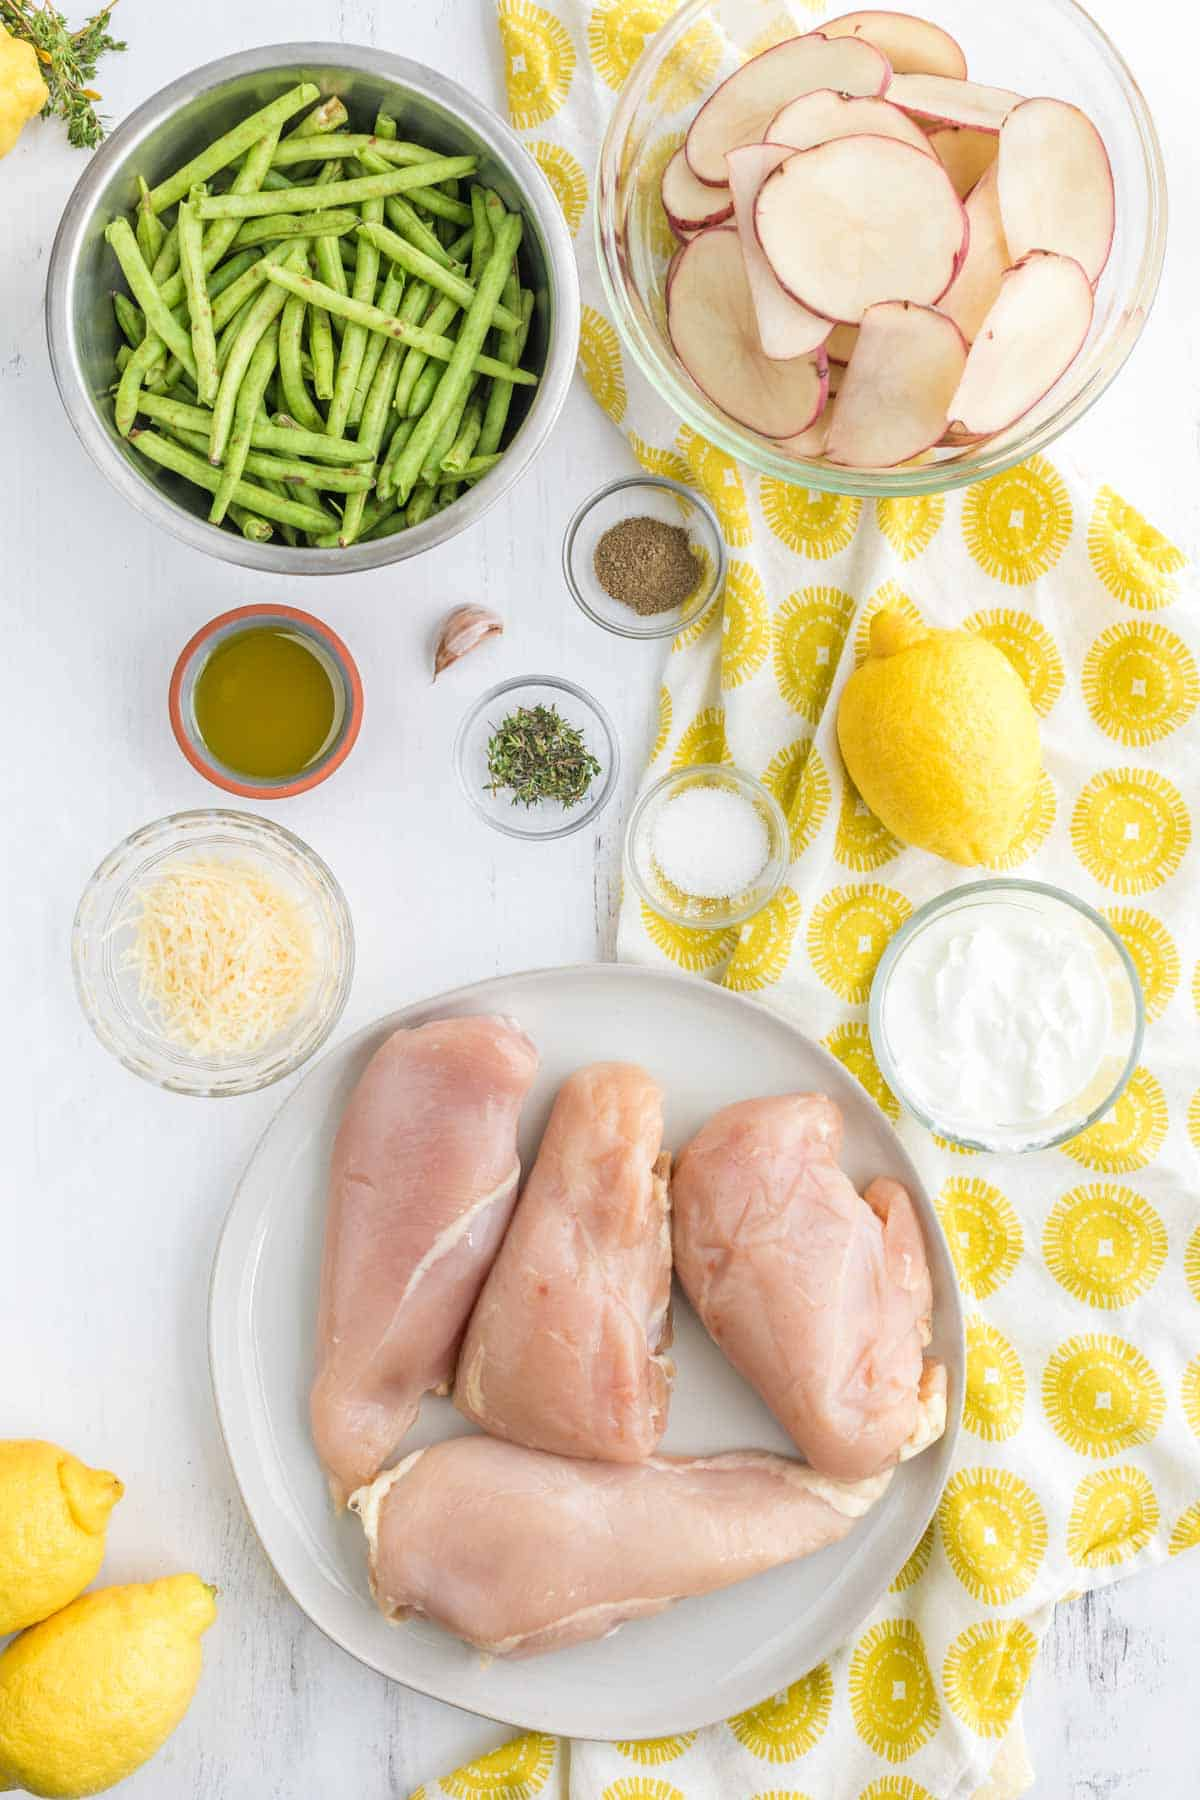 four raw chicken breasts on a plate with bowls of sliced potatoes, green beans, Greek yogurt, olive oil, salt, pepper, parmesan cheese, fresh thyme, a garlic clove and a lemon